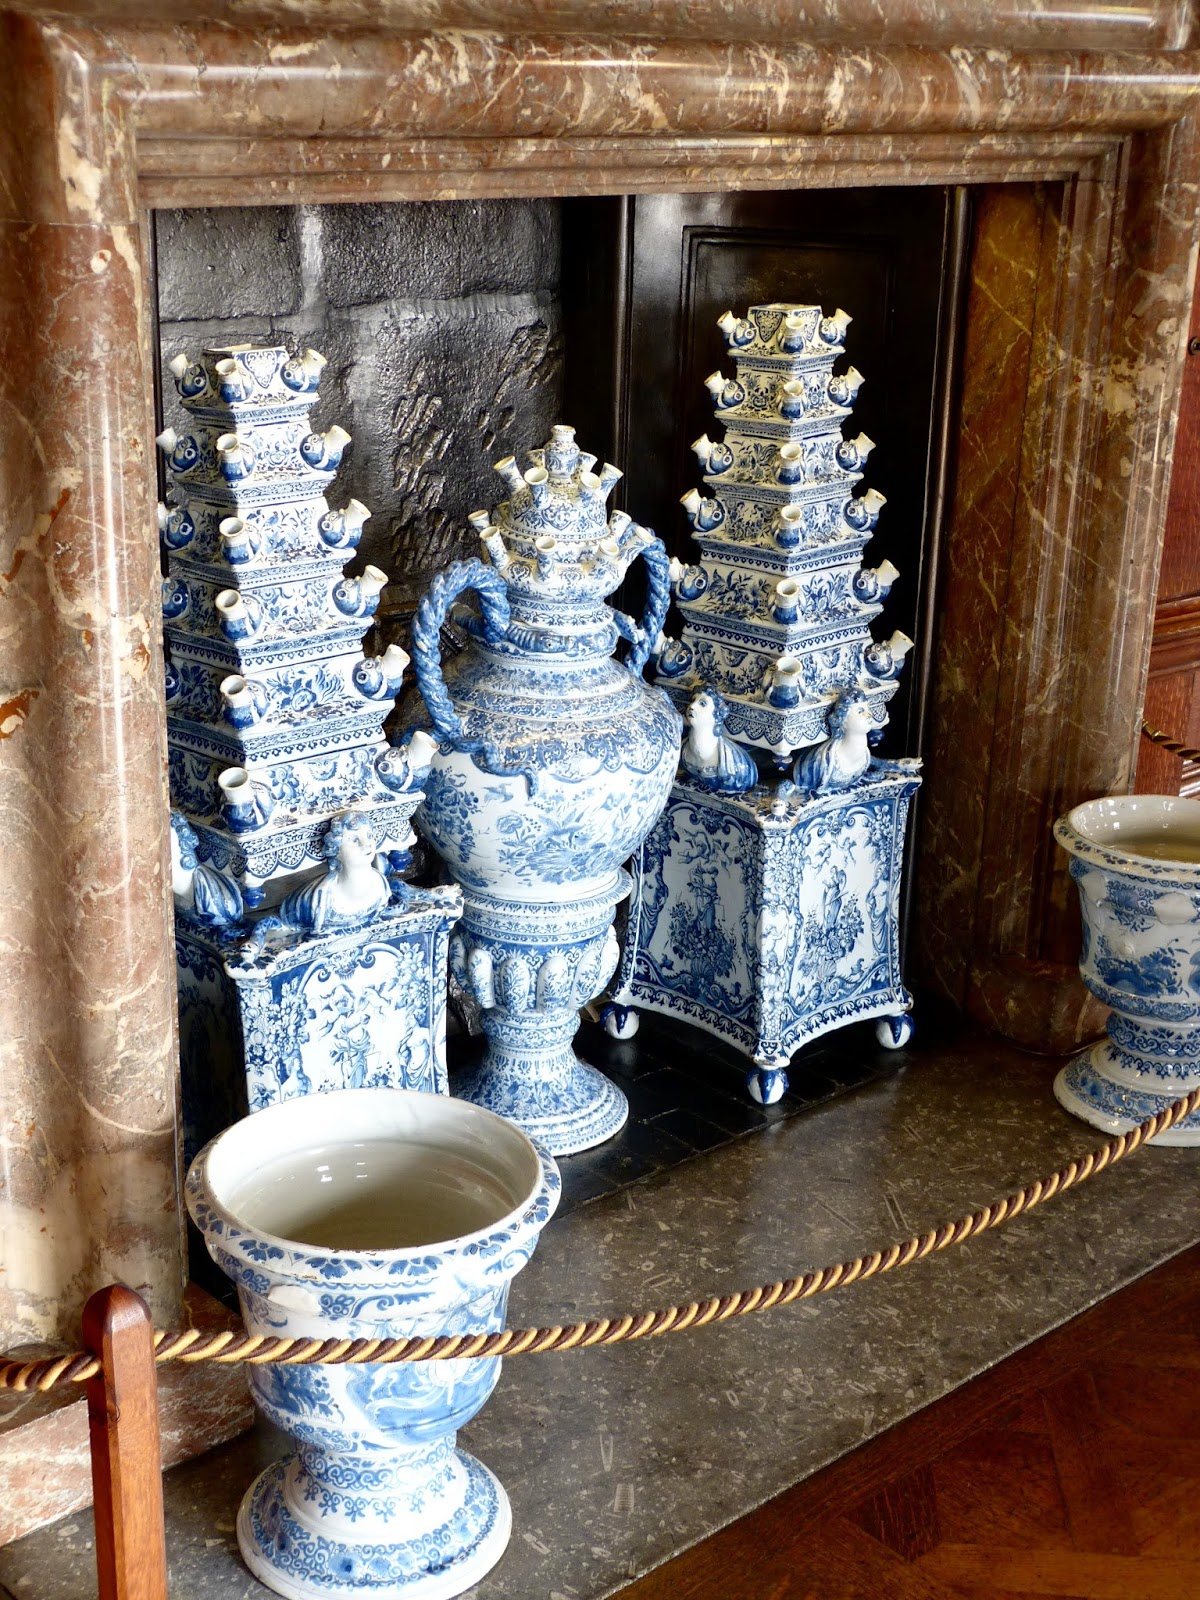 Delftware vases  in the Great Chamber, Chatsworth